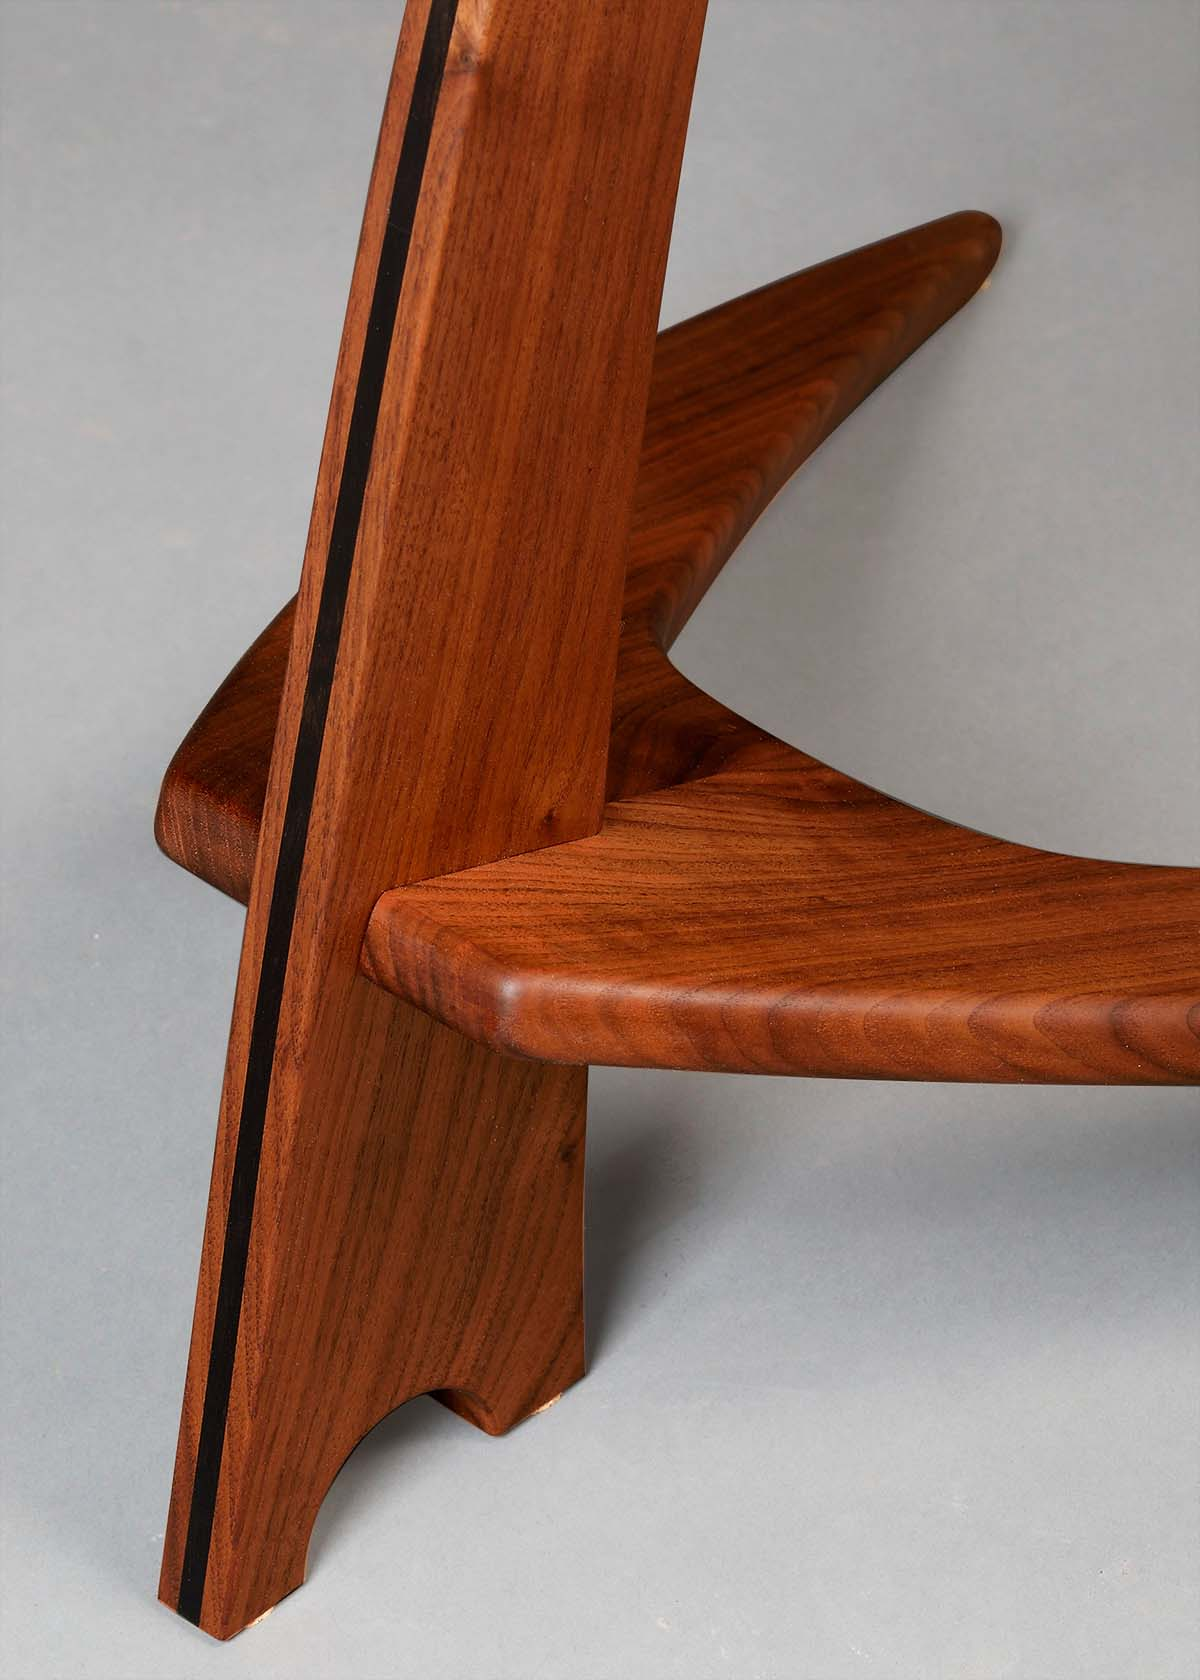 WM Guitar Stand in Walnut with Ebony Inlay